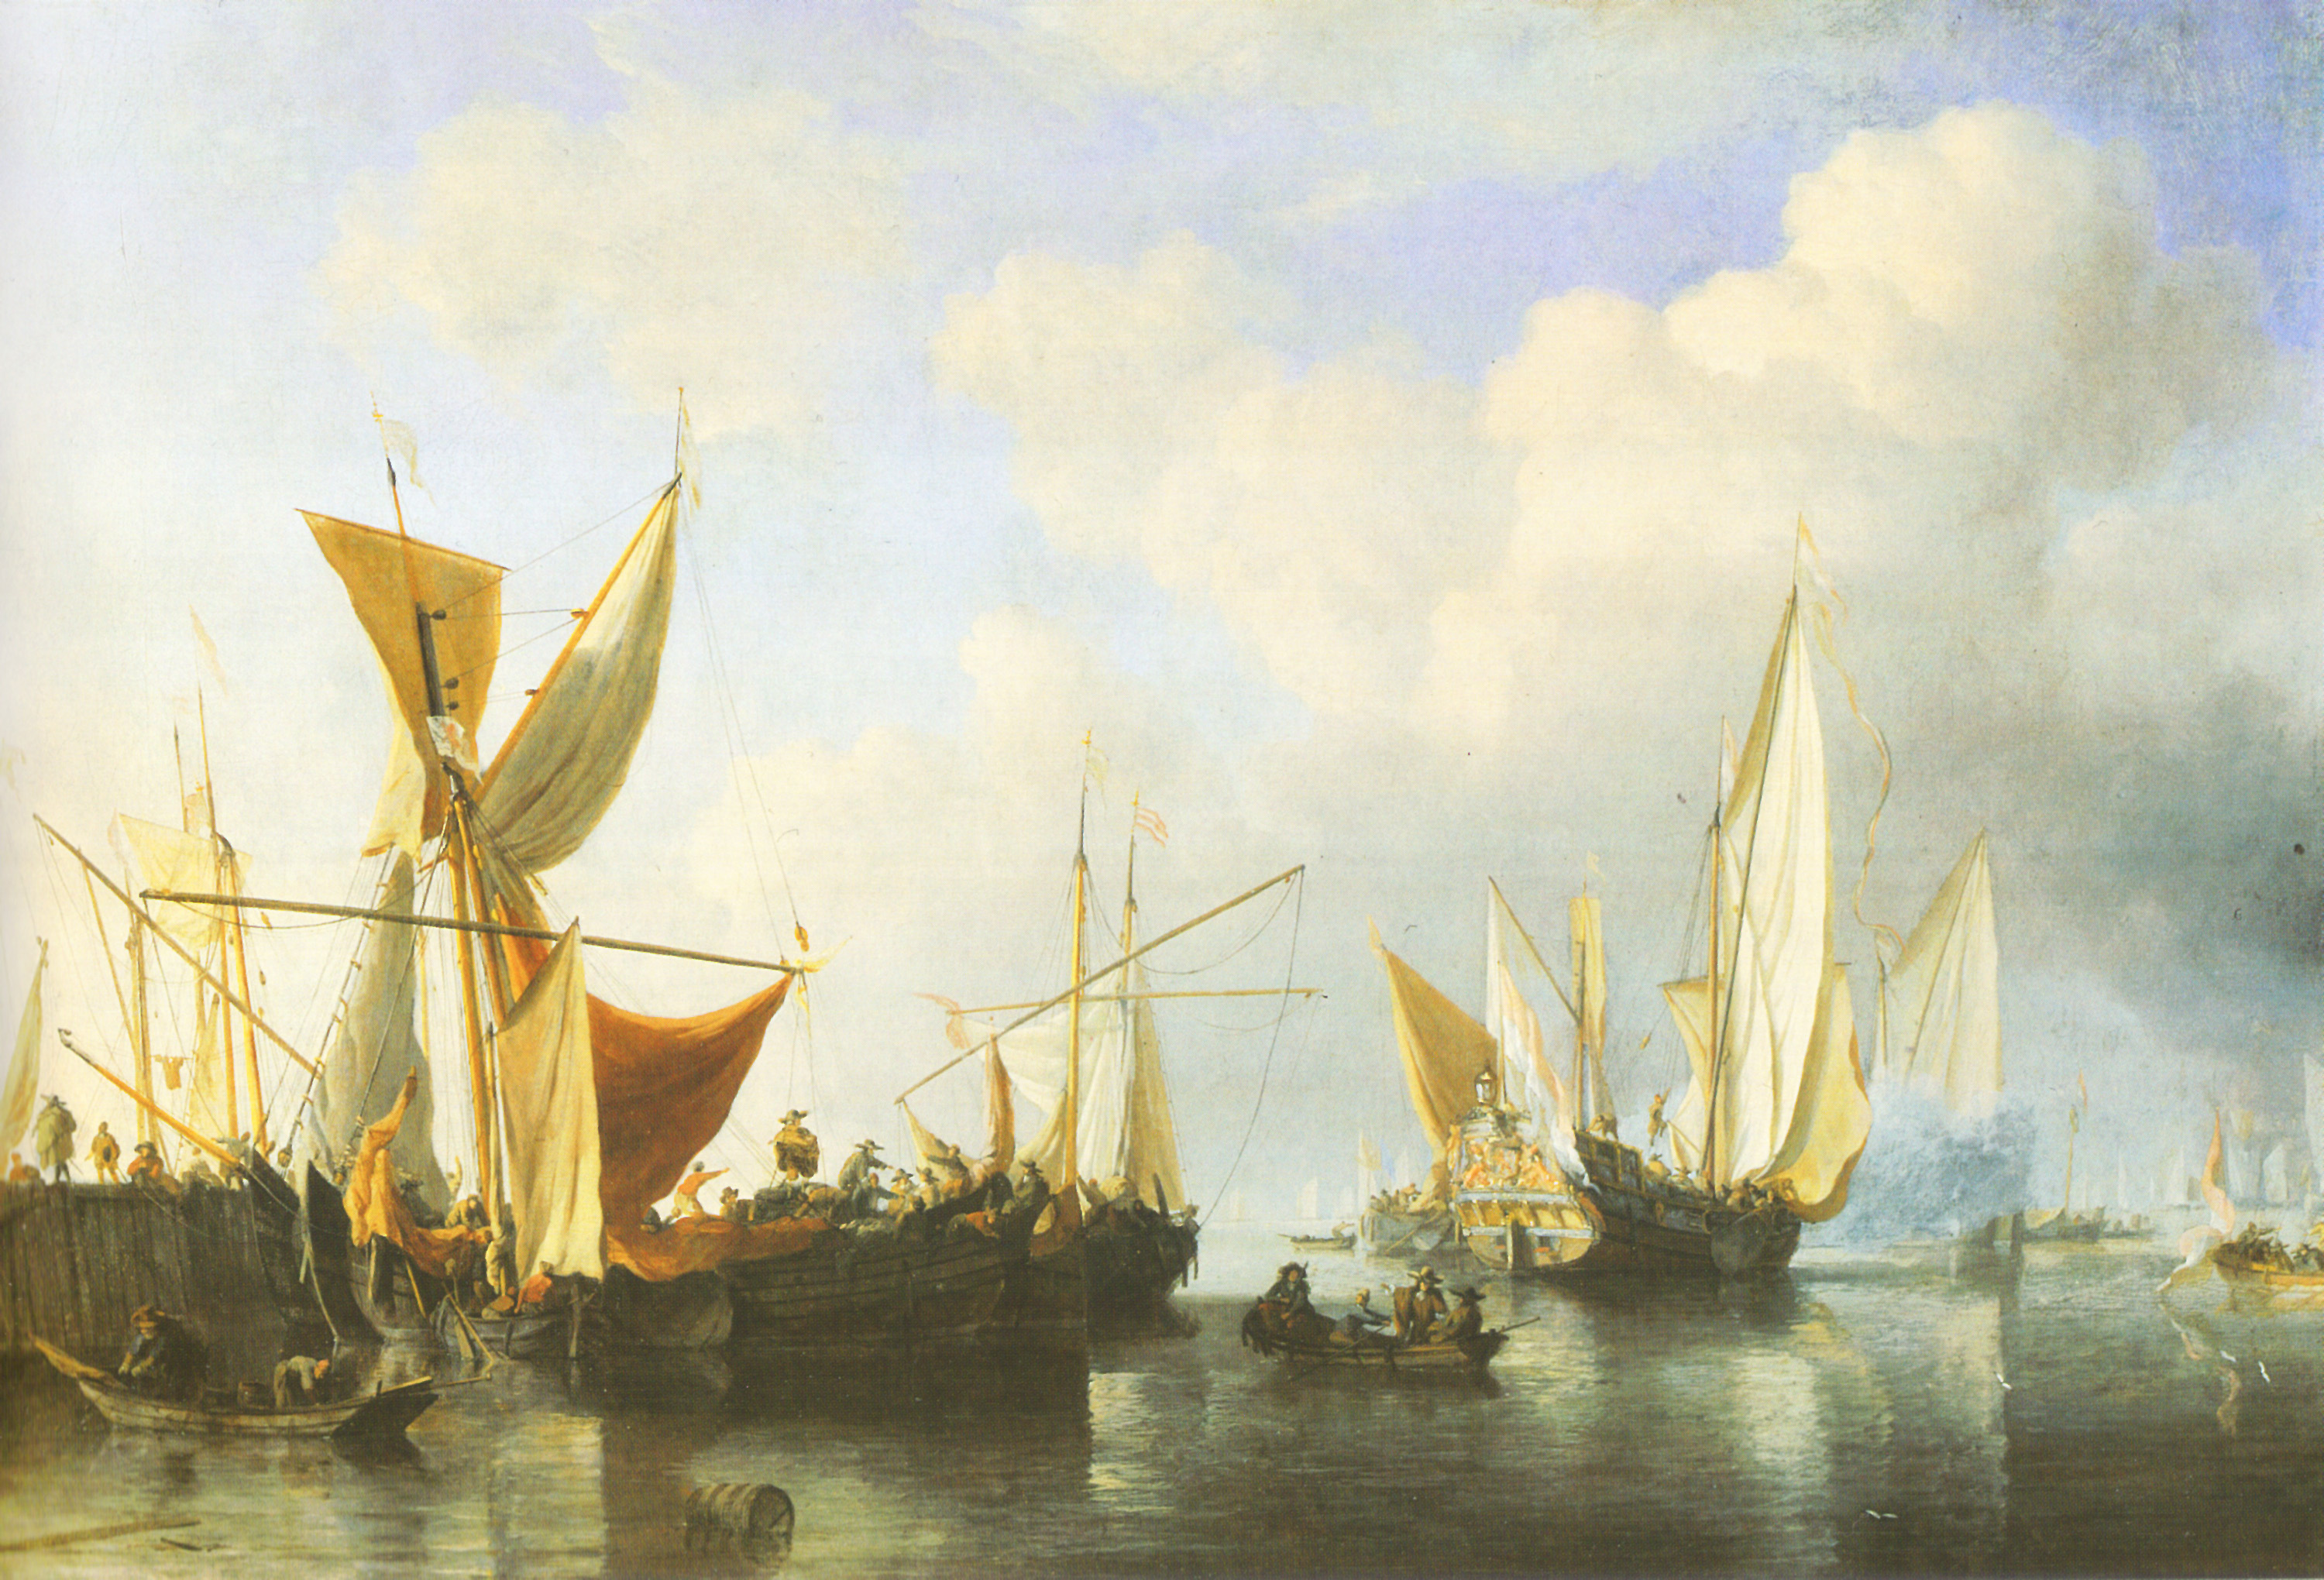 This painting by Willem van de